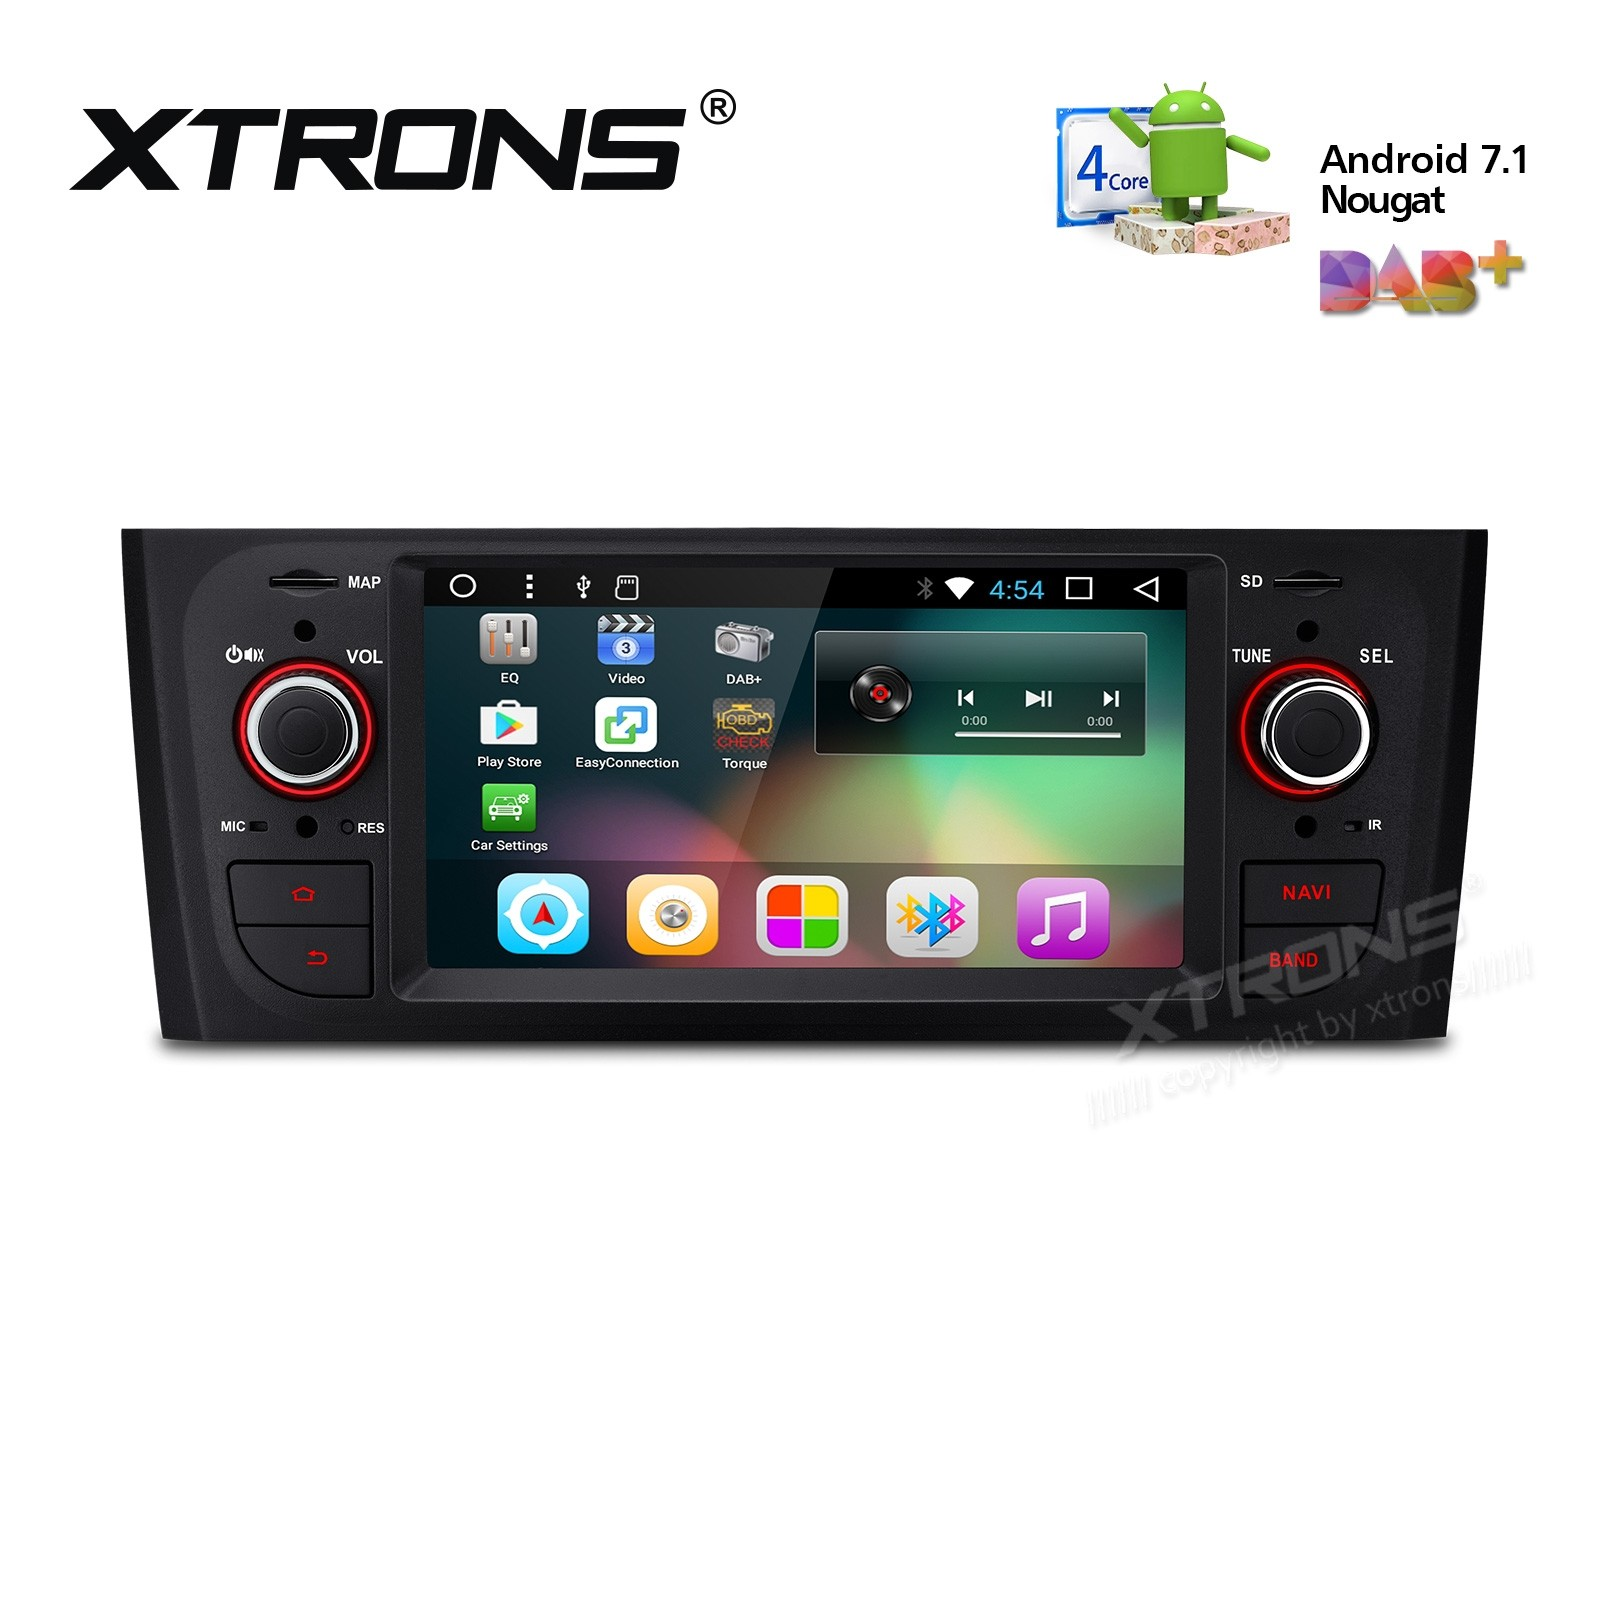 """6.1"""" Android 7.1 Quad core 16GB ROM in-dash mechless car stereo with full RCA Output Custom Fit for FIAT"""